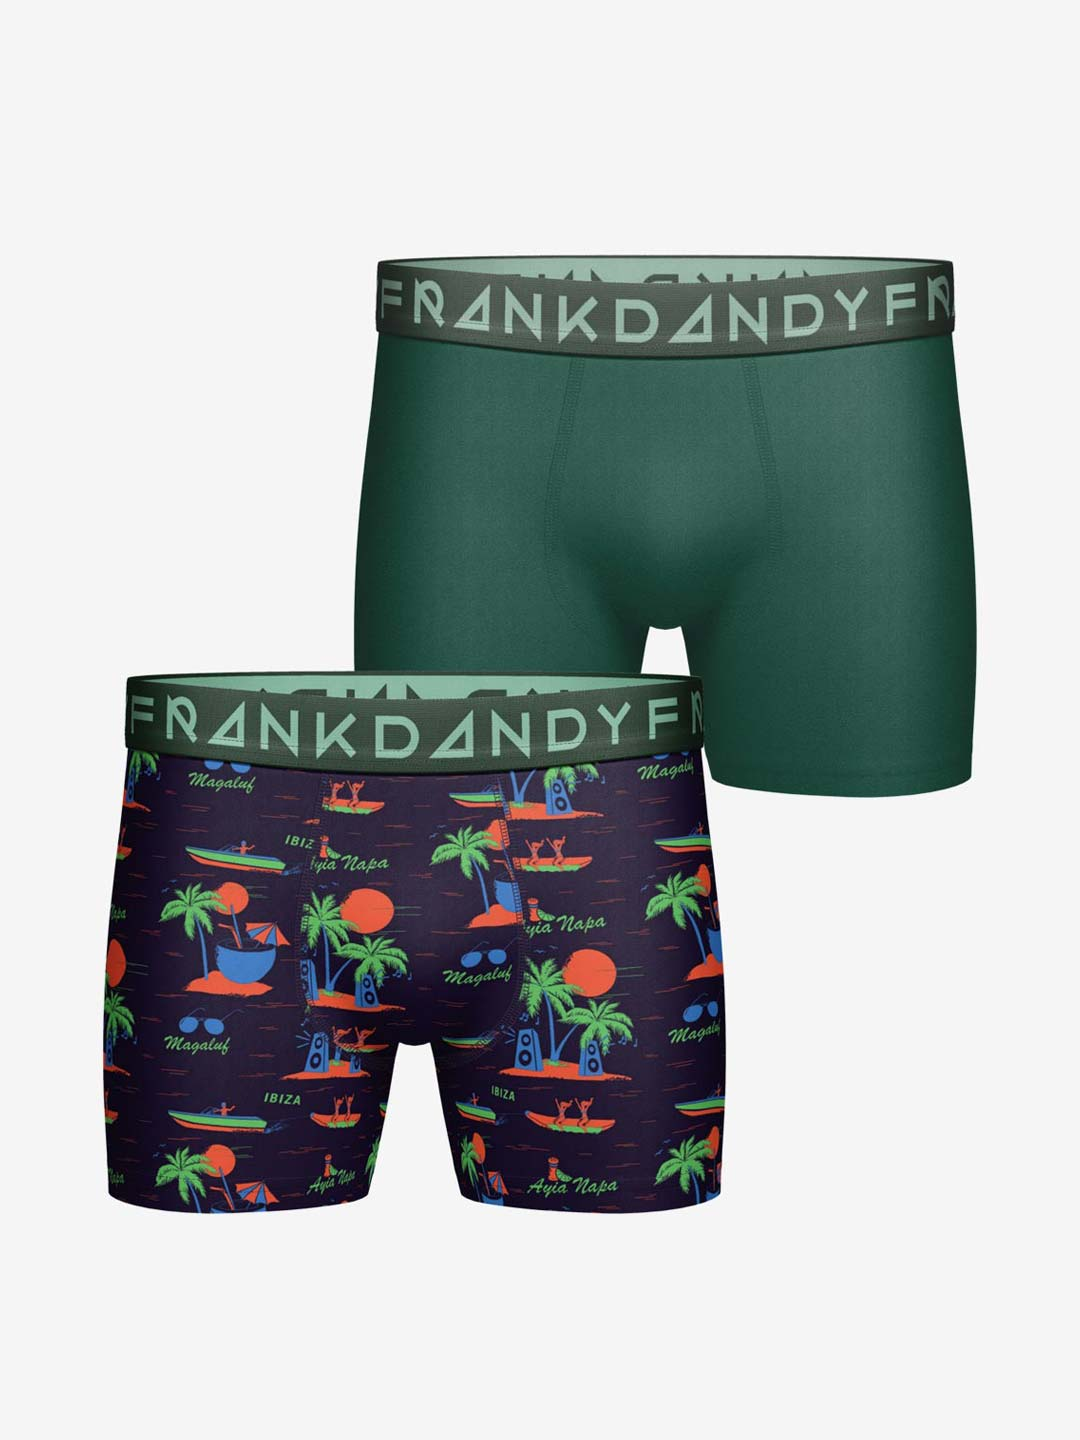 Frank Dandy 2-Pack Magaluf Boxer